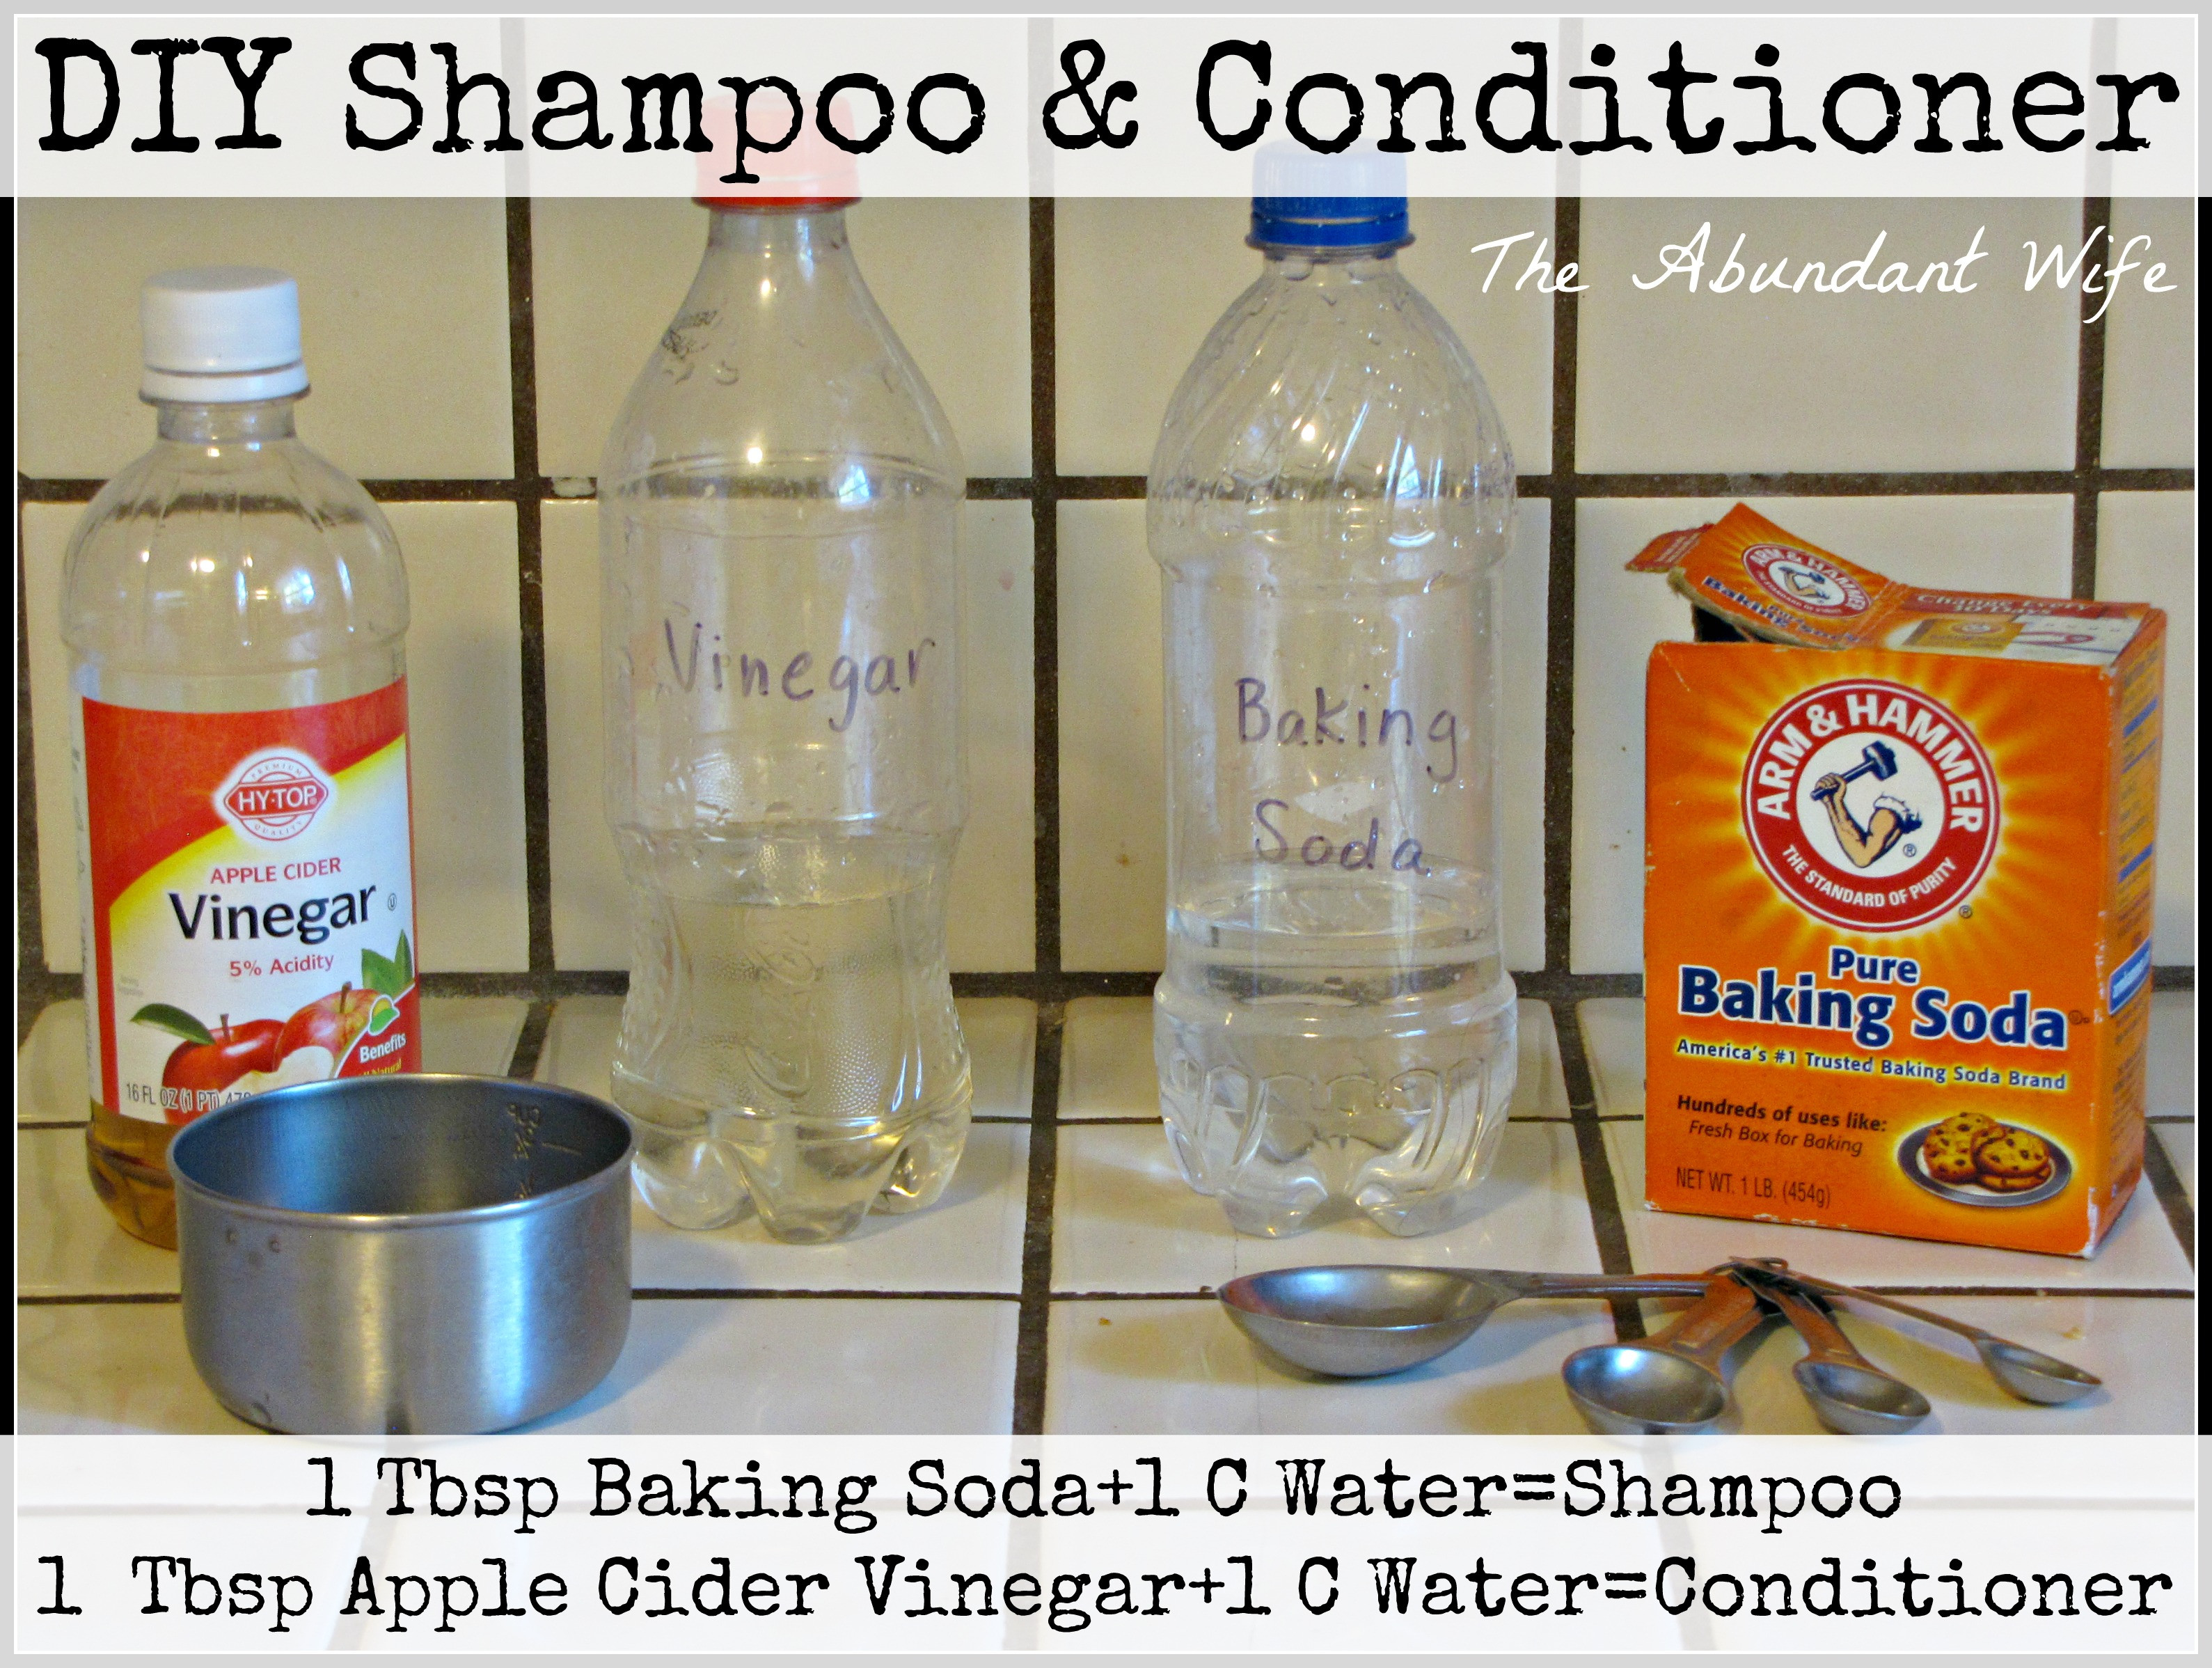 Diy Shampoo  How to Make DIY Shampoo & Conditioner